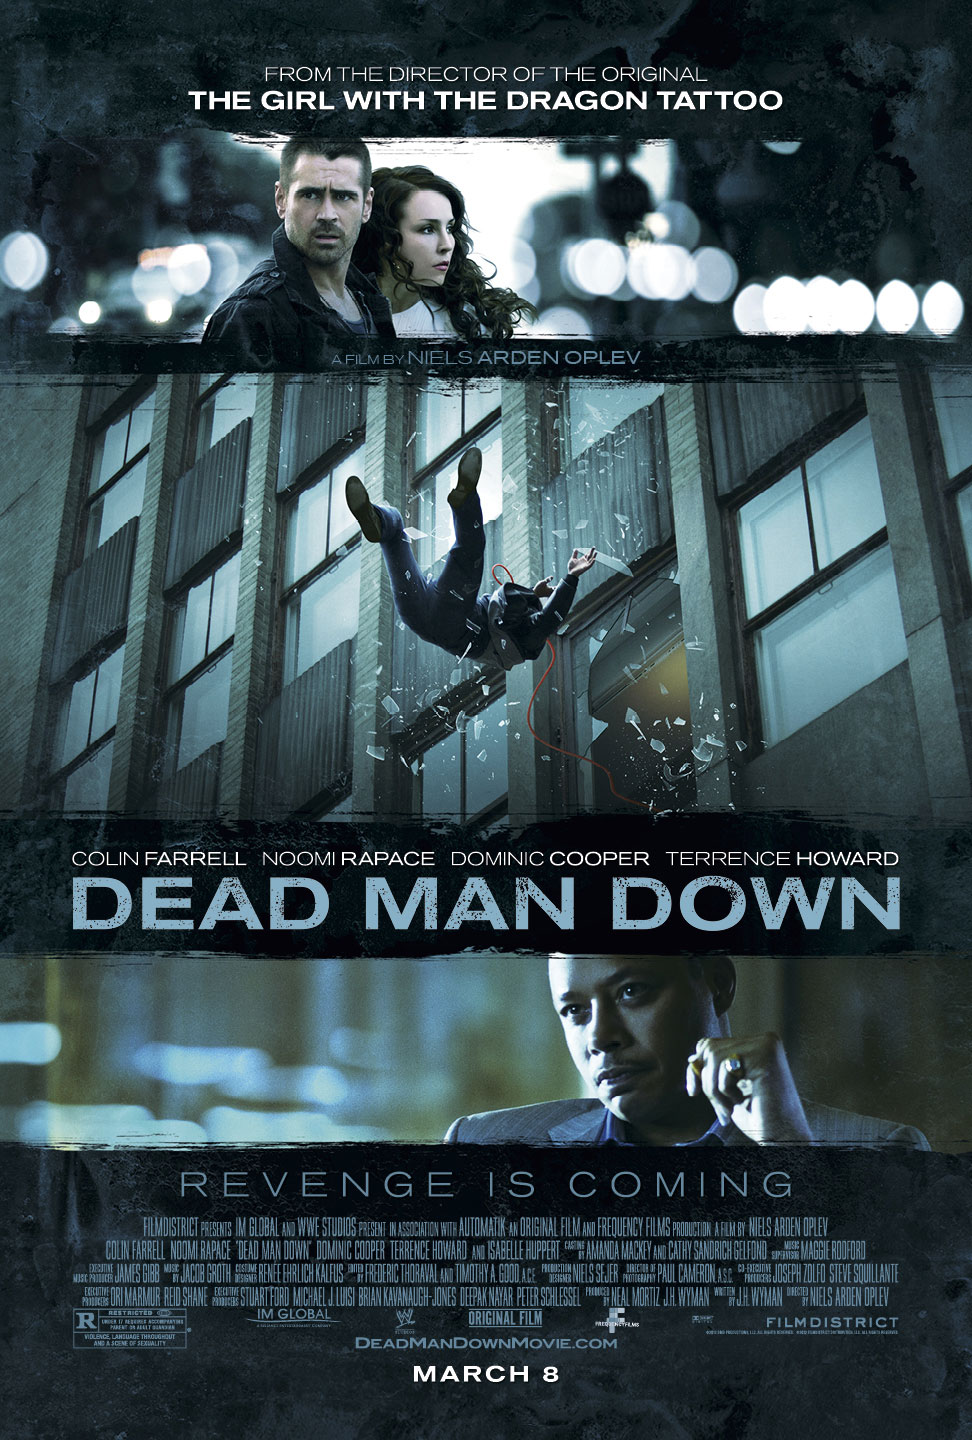 Dead Man Down Poster1 Colin Farrell Seeks Revenge in New Dead Man Down Trailer and Poster